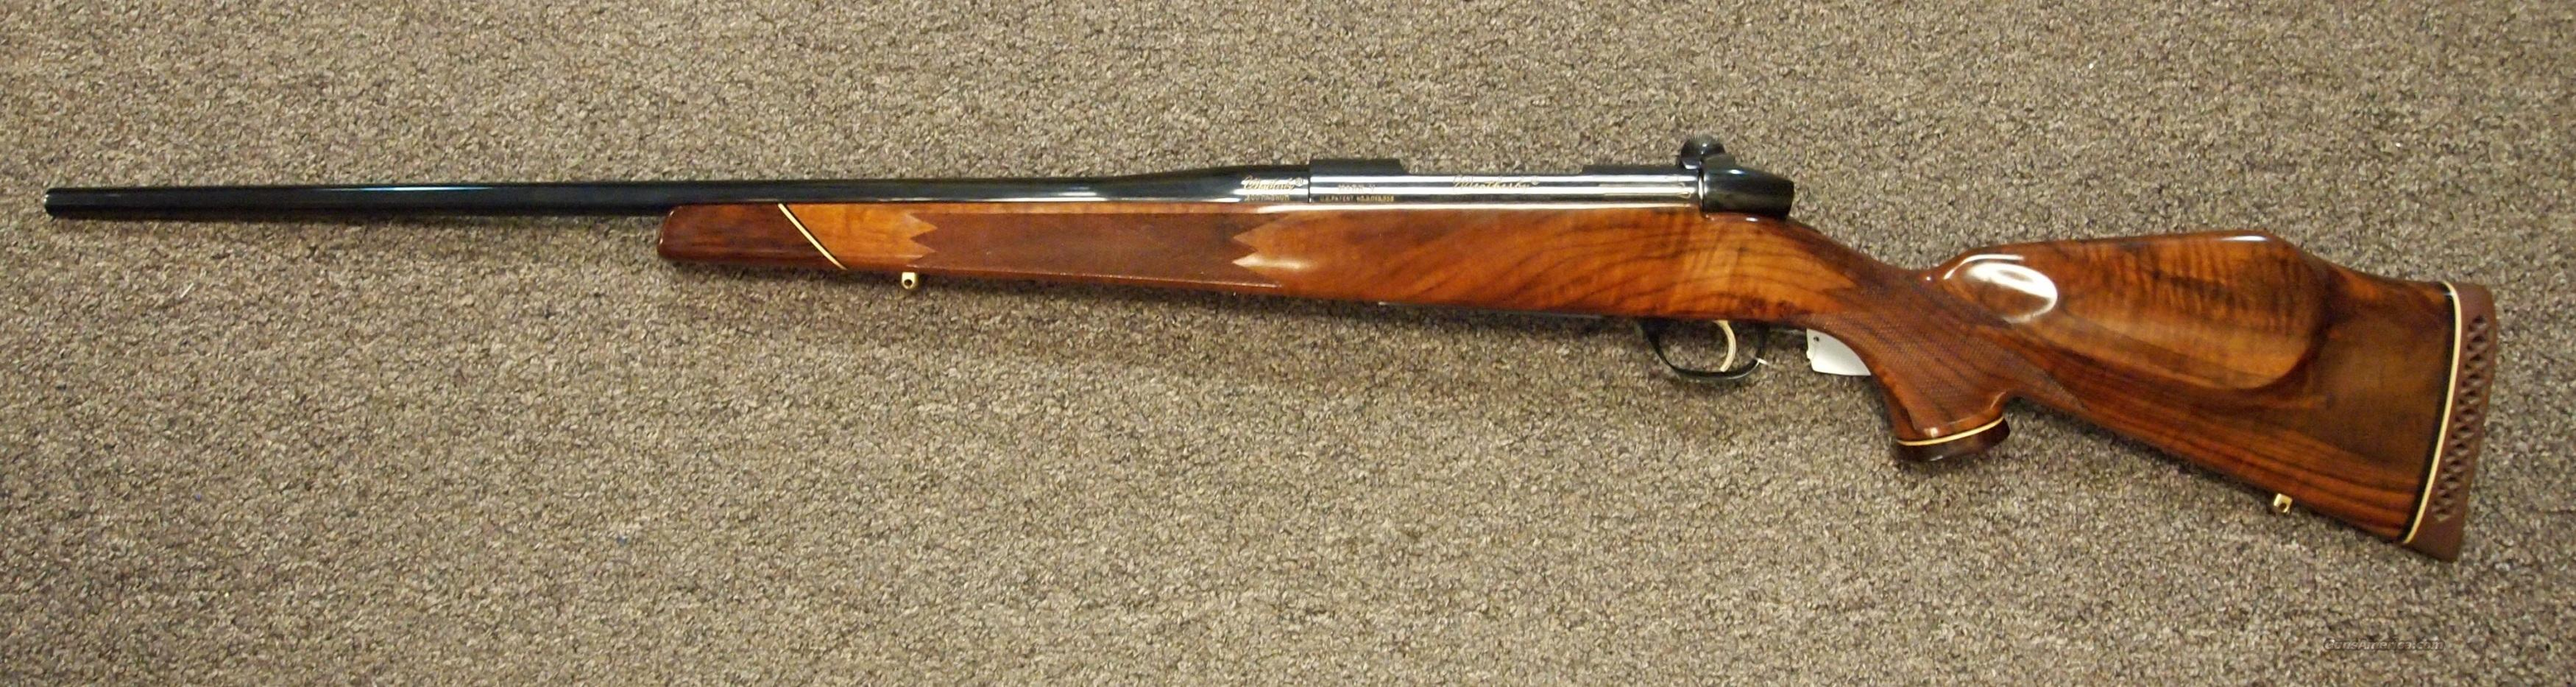 Weatherby MKV 35th Anniversary  Guns > Rifles > Weatherby Rifles > Sporting